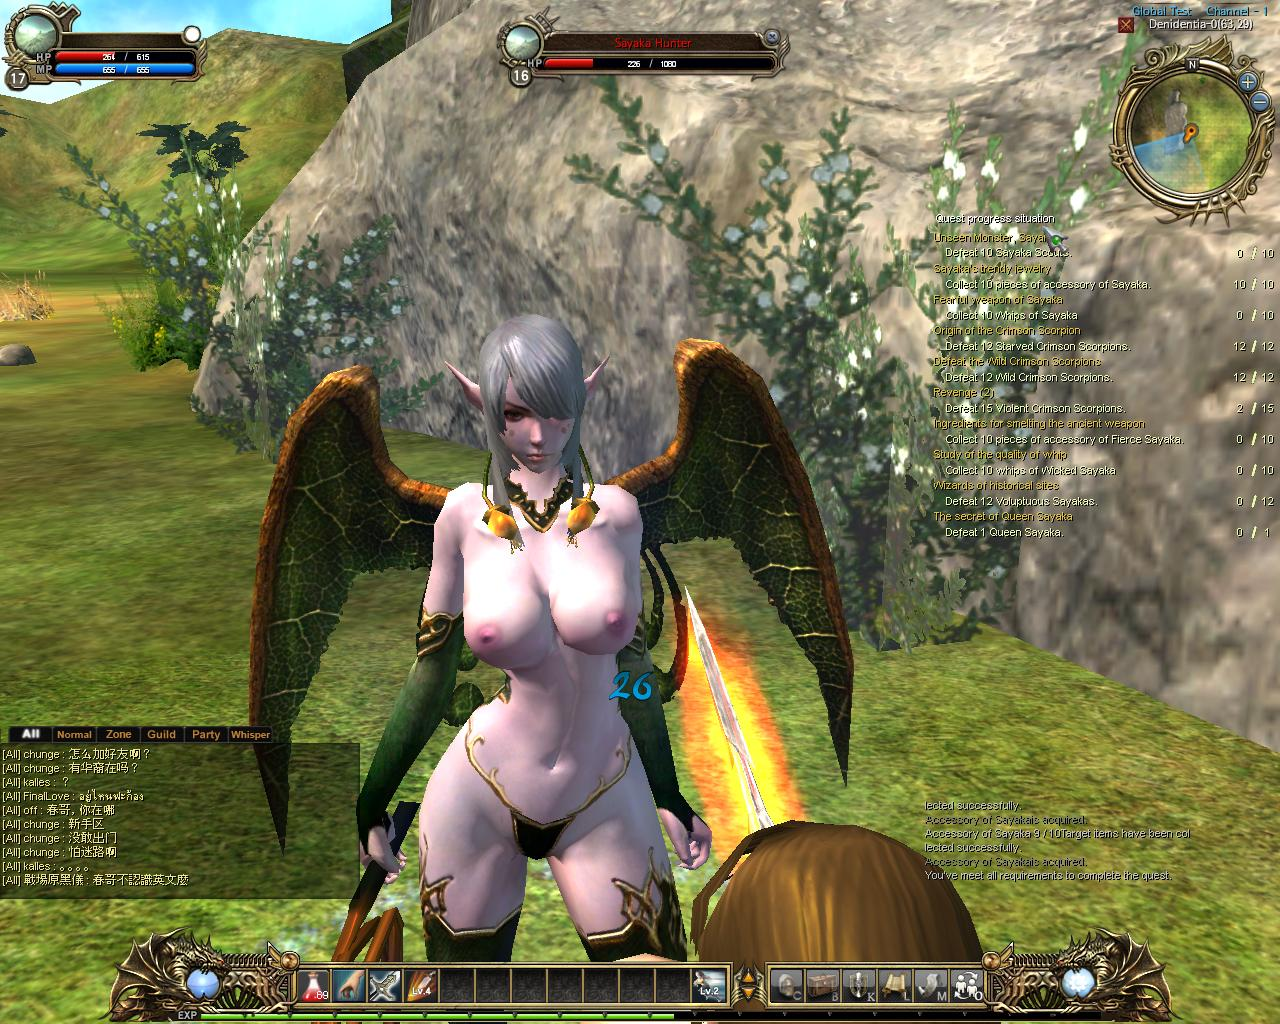 Mmorpg hentai erotic movies